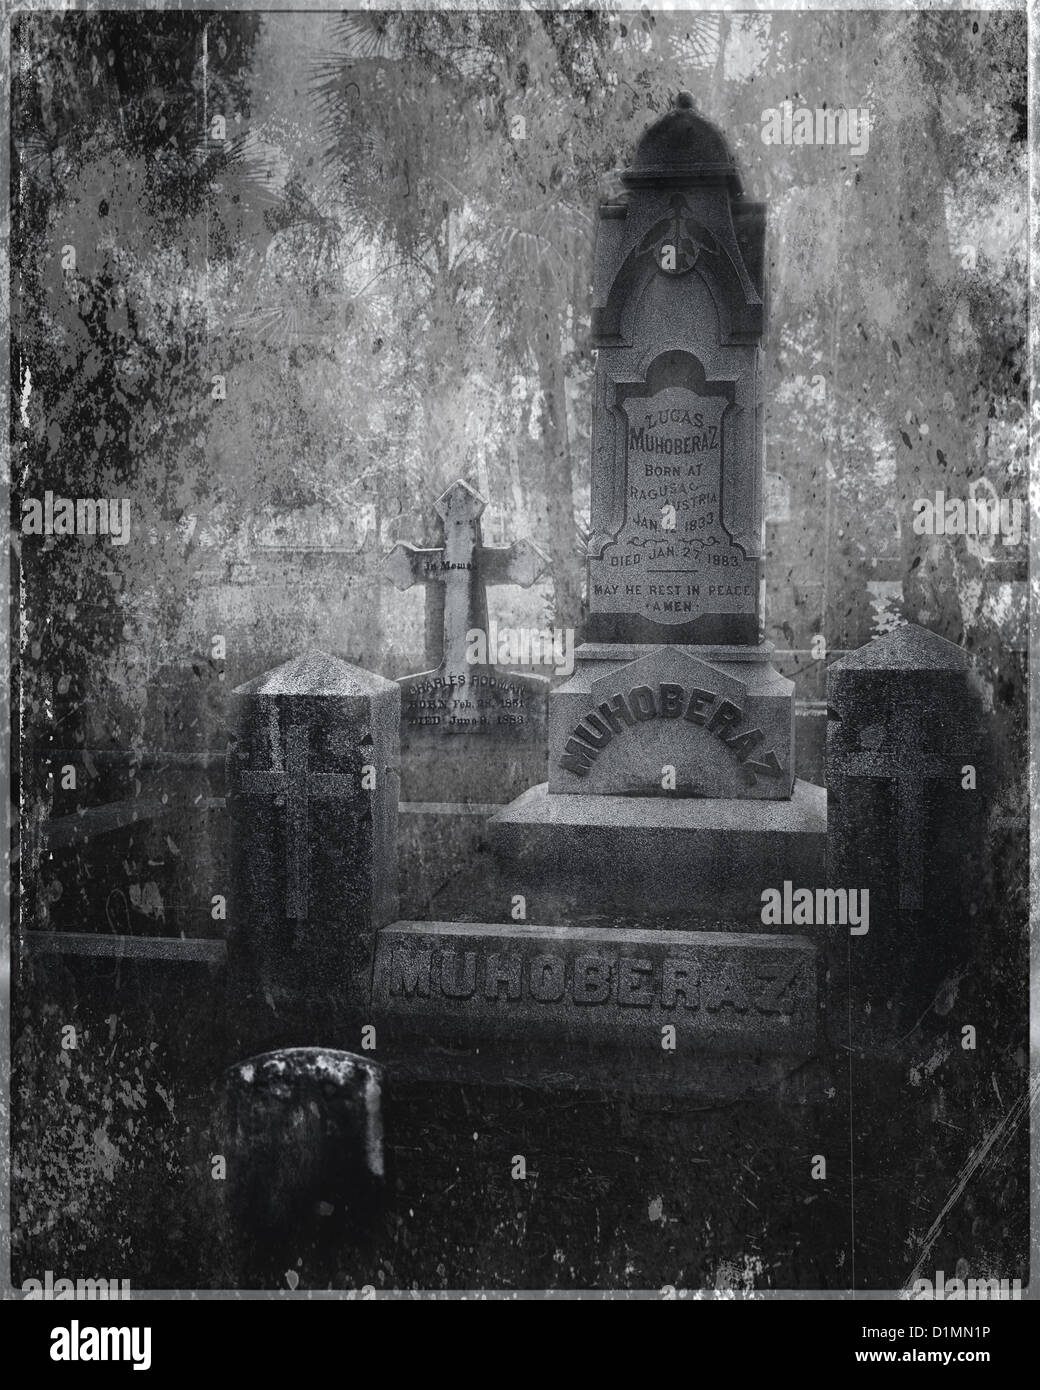 Tombstones and crossed with texture in a cemetery. - Stock Image